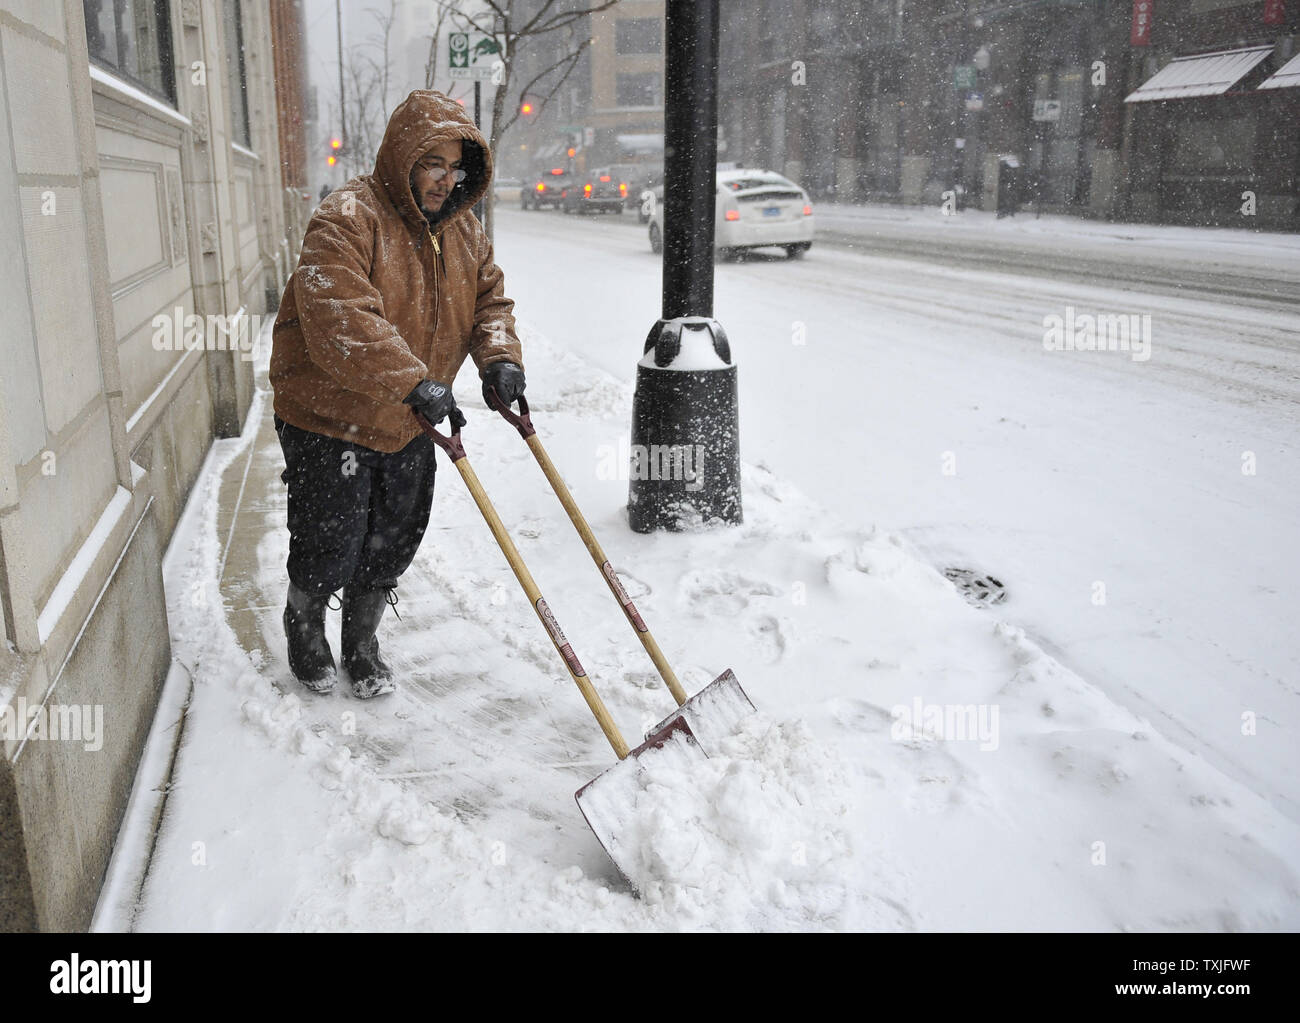 David Torres shovels snow in front of a building as a major snow storm hits on February 1, 2011 in Chicago. Up to two feet of snow is expected to fall in the Chicago area as a winter storm created blizzard conditions from the southern Great Plains to the upper midwest on Tuesday.     UPI/Brian Kersey - Stock Image